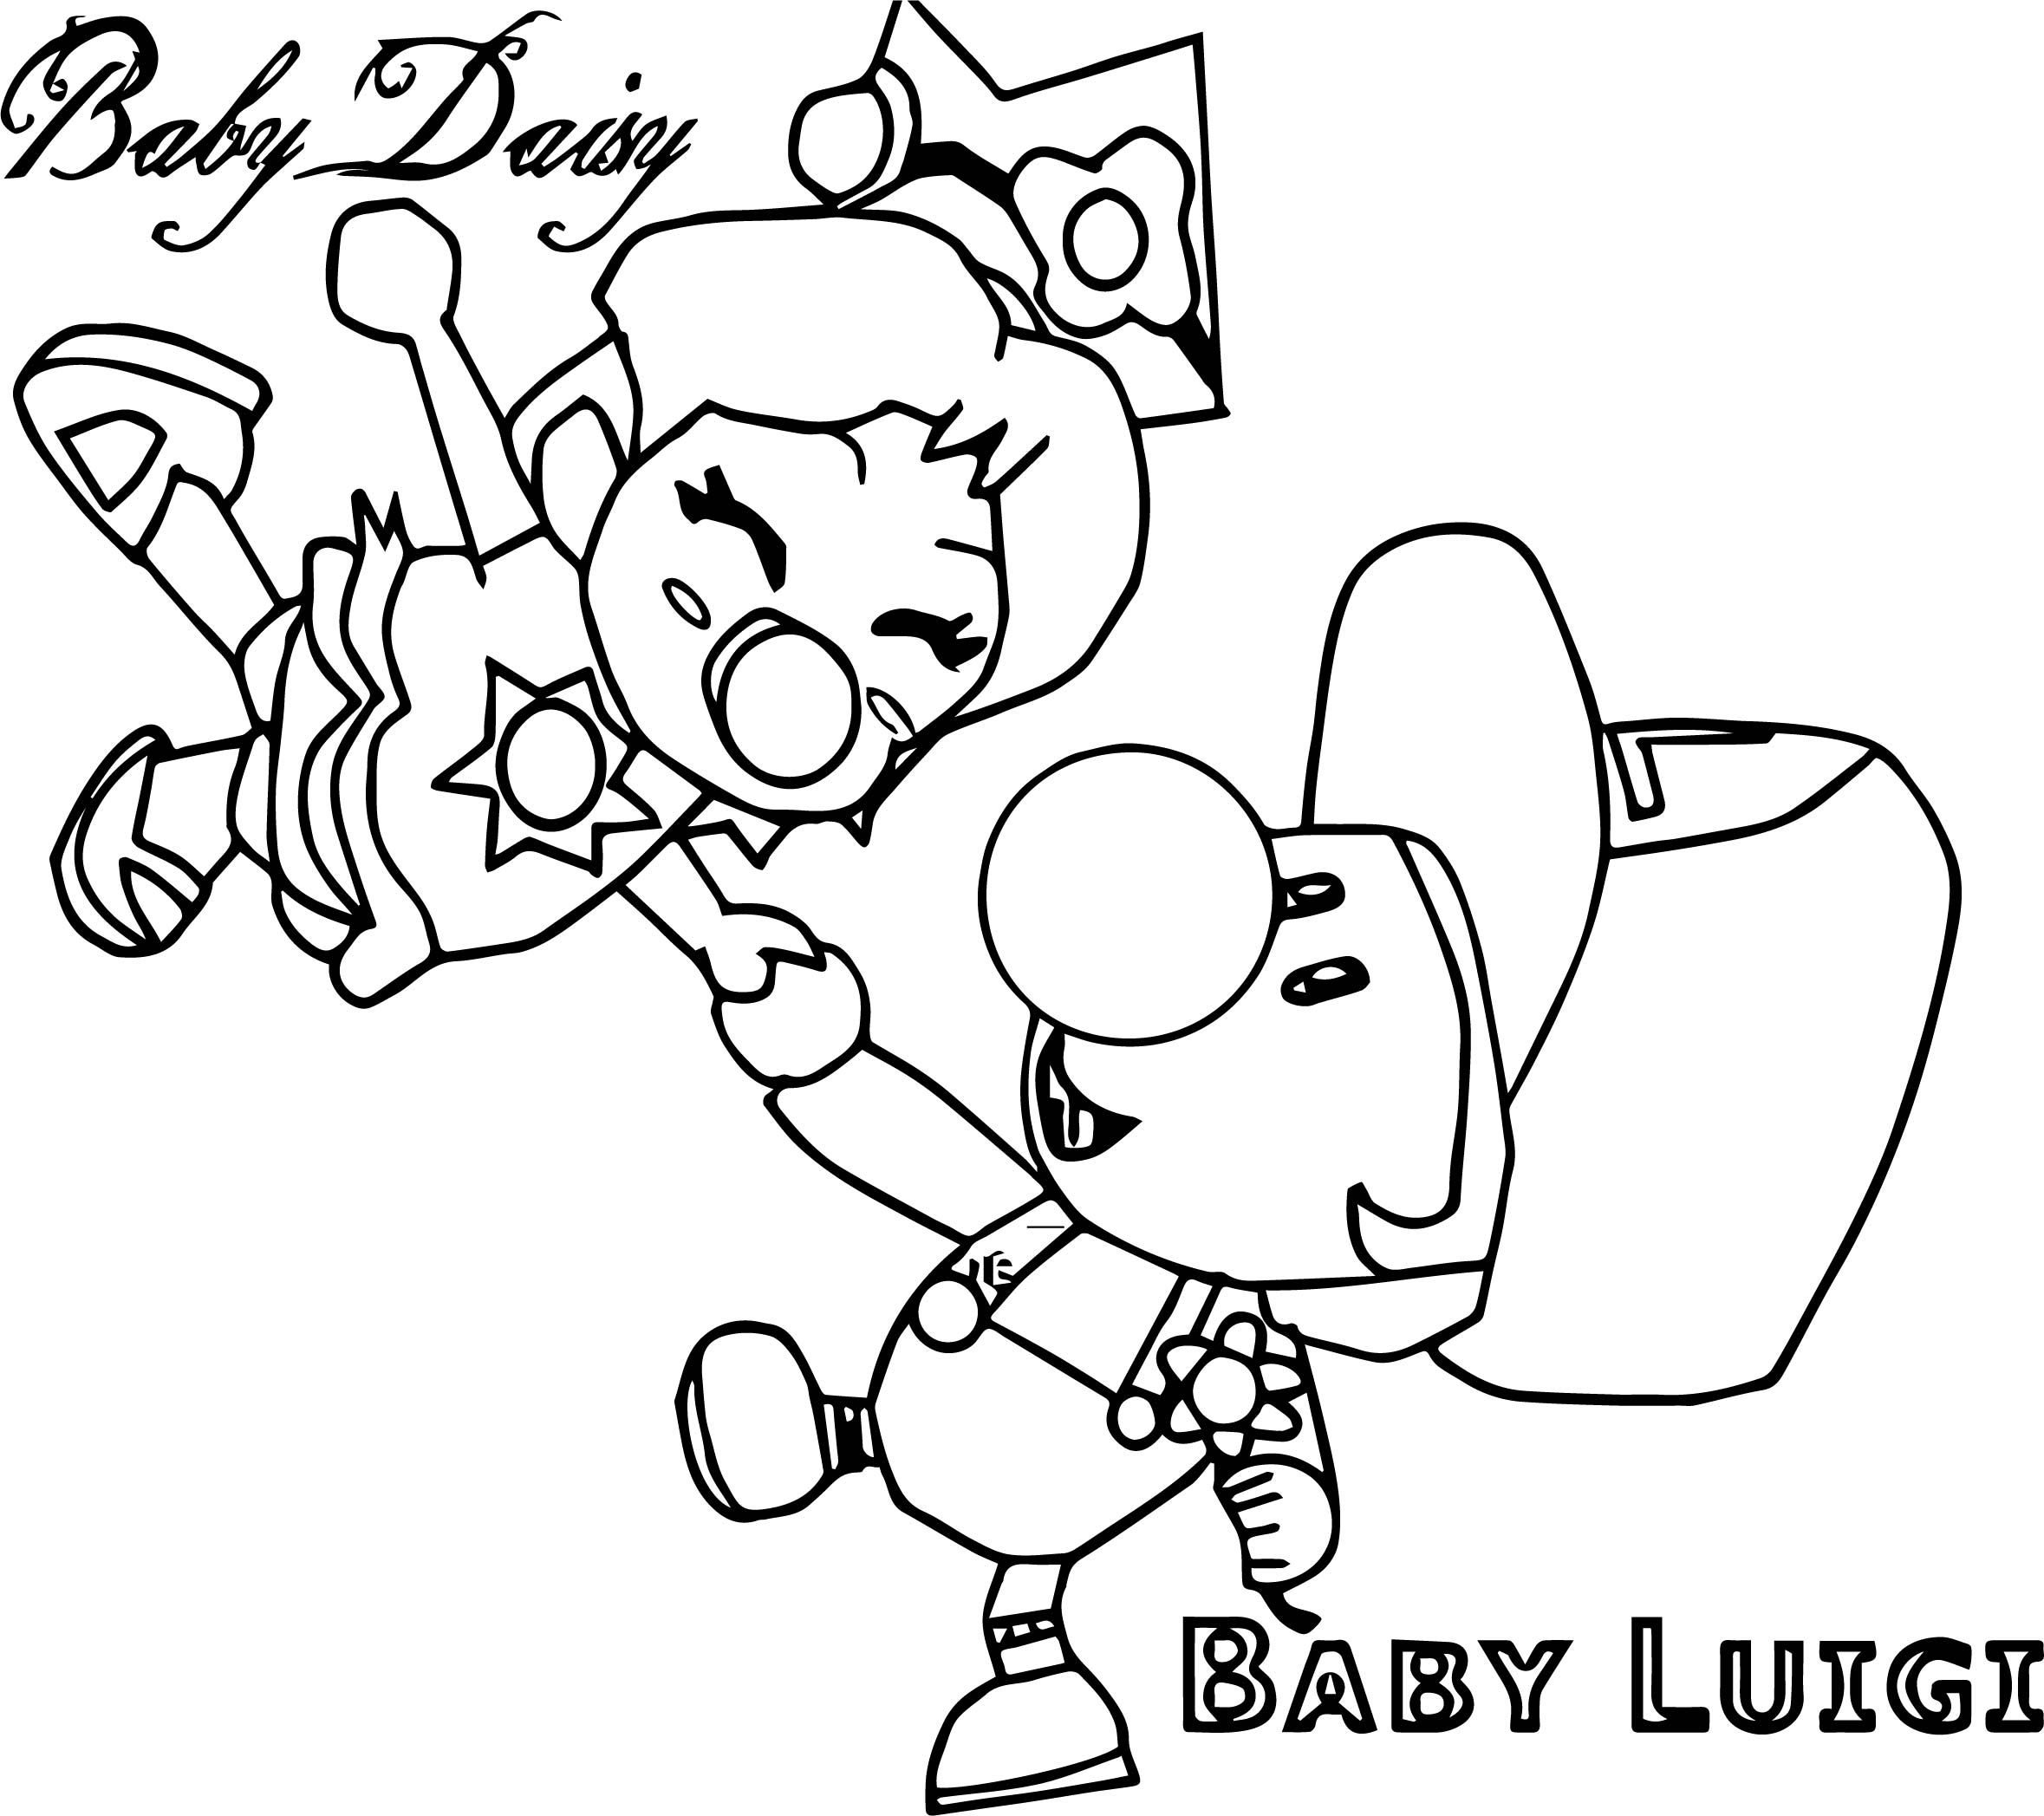 Nice Baby Daisy Baby Luigi Coloring Page Toy Story Coloring Pages Minion Coloring Pages Baby Daisy